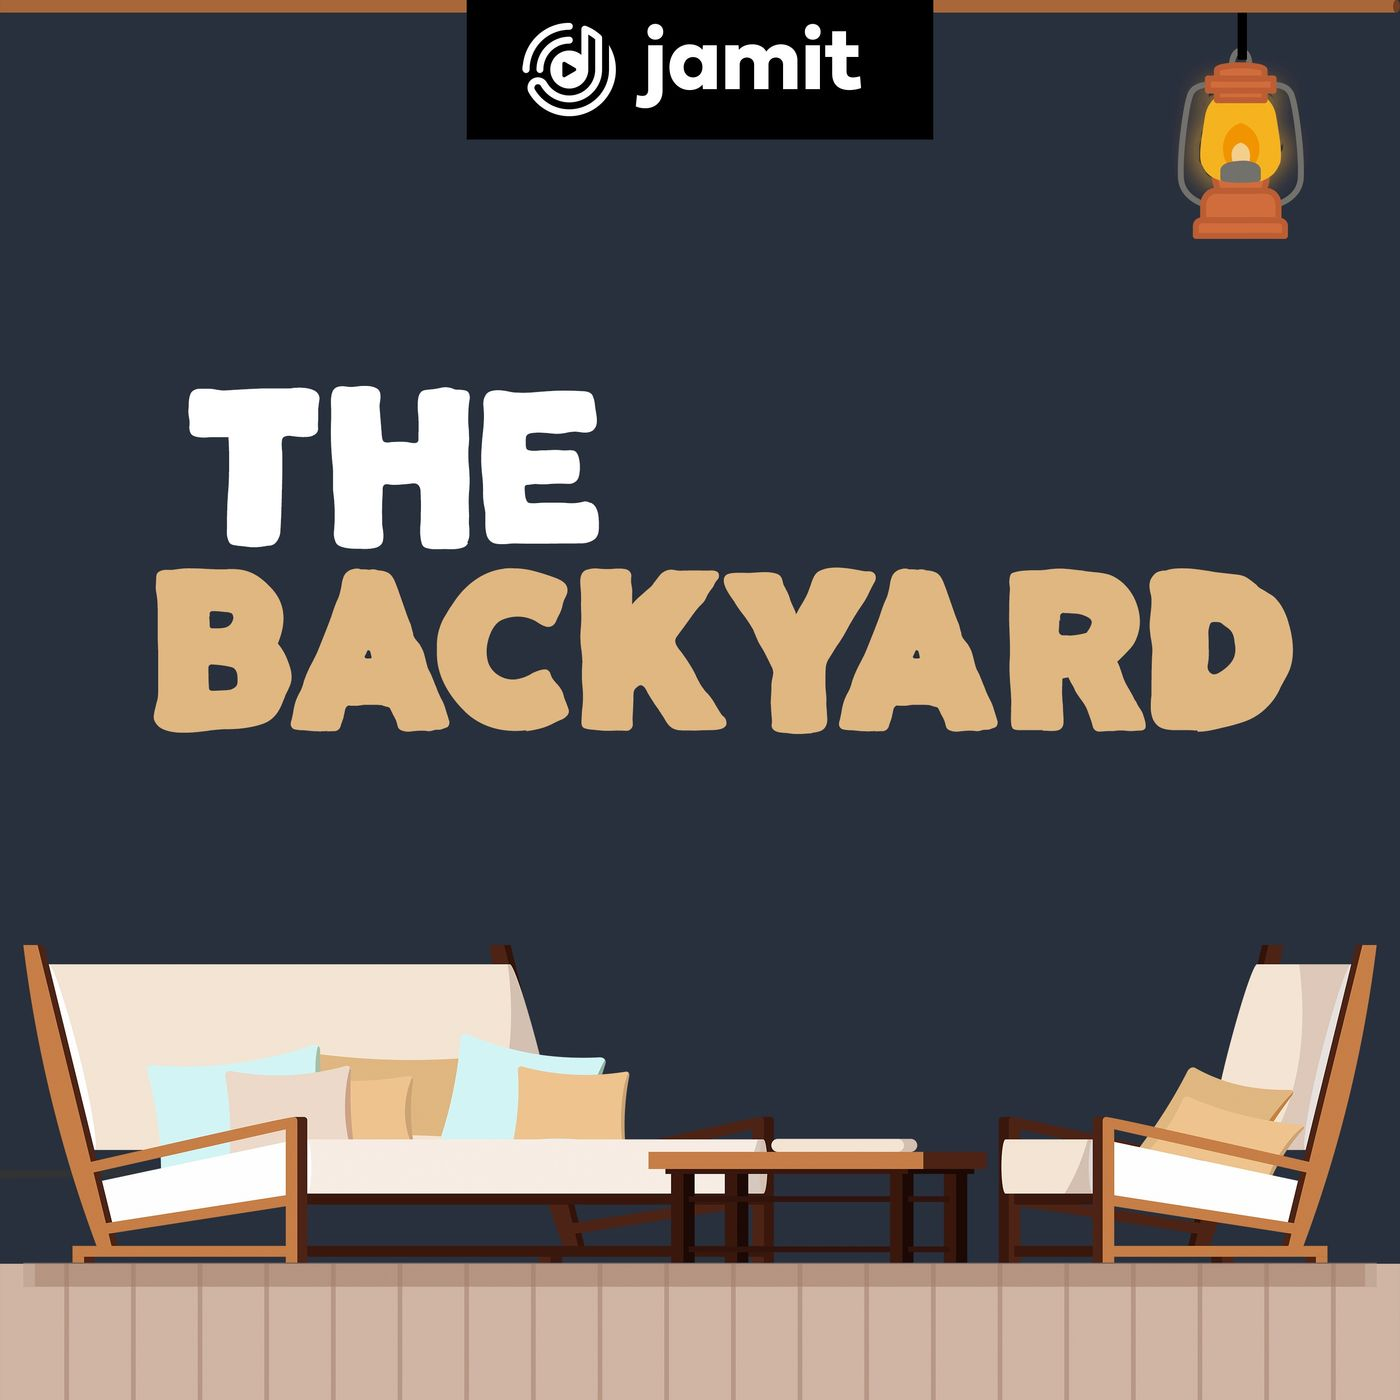 The Backyard on Jamit